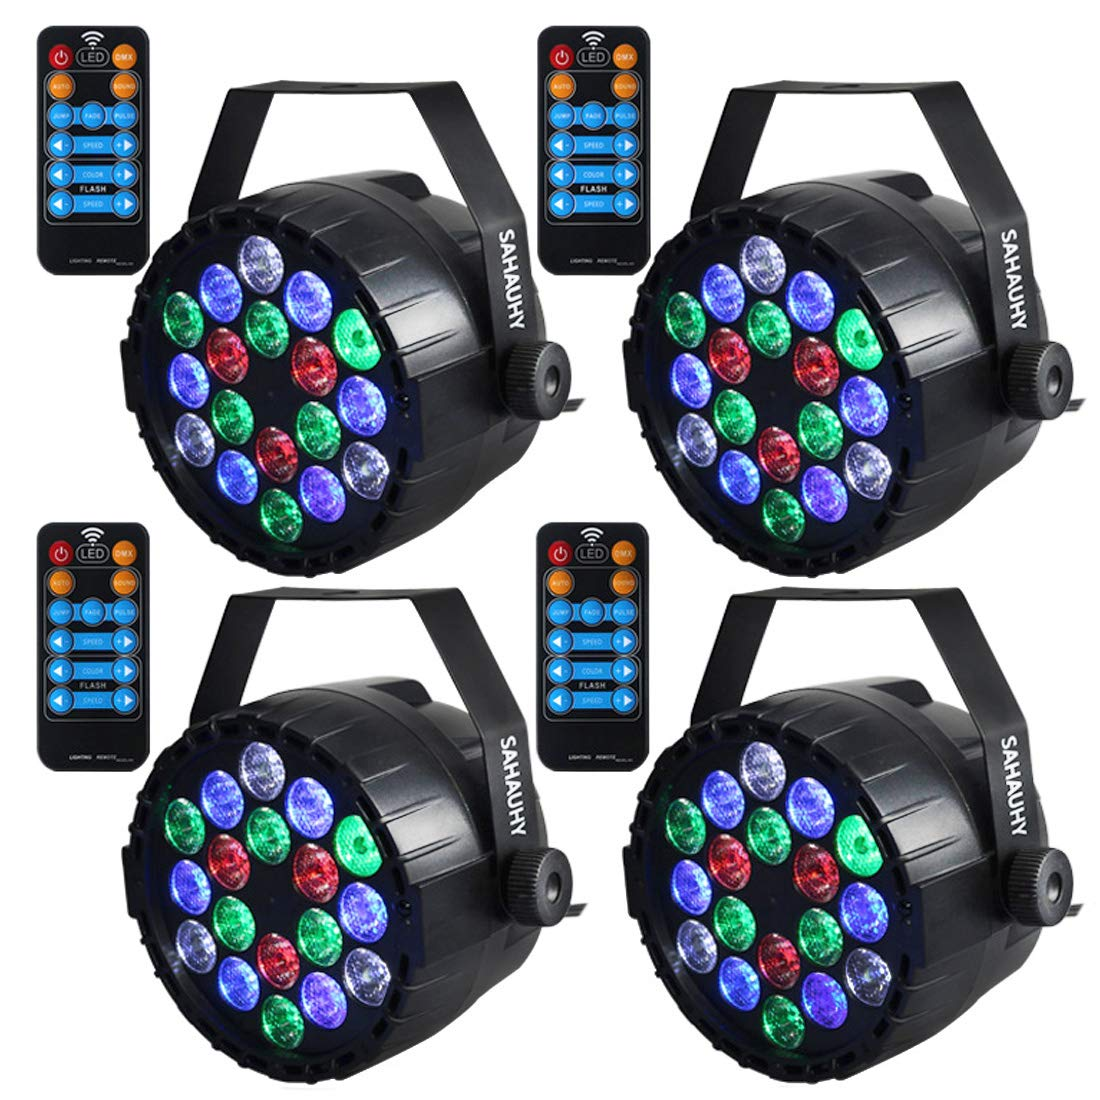 Engagement & Wedding Jewelry & Watches Aspiring Led Moving Head Lighting Fixture For Parties And Events